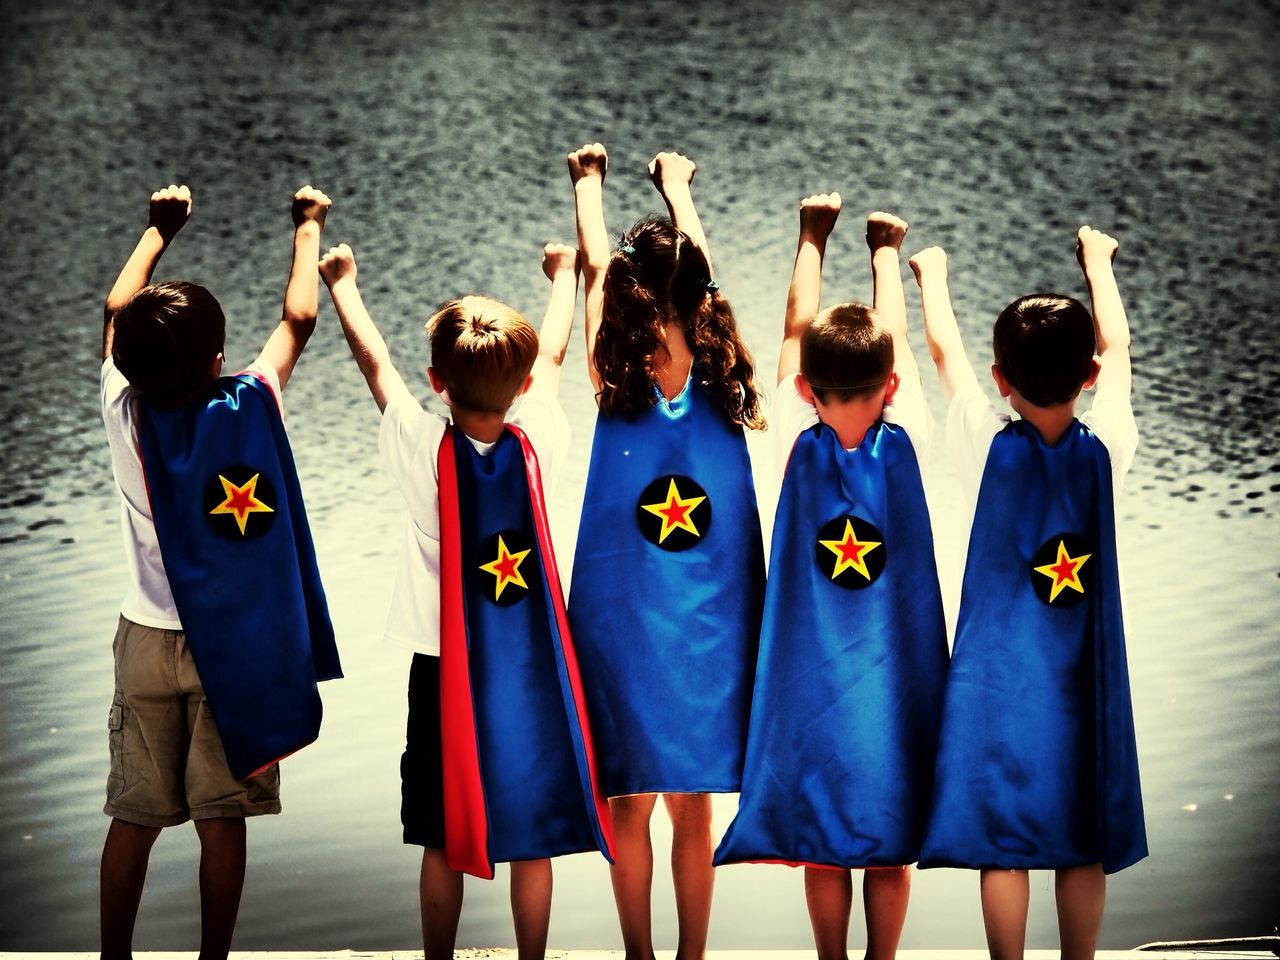 Rear view of children in superhero costume against lake